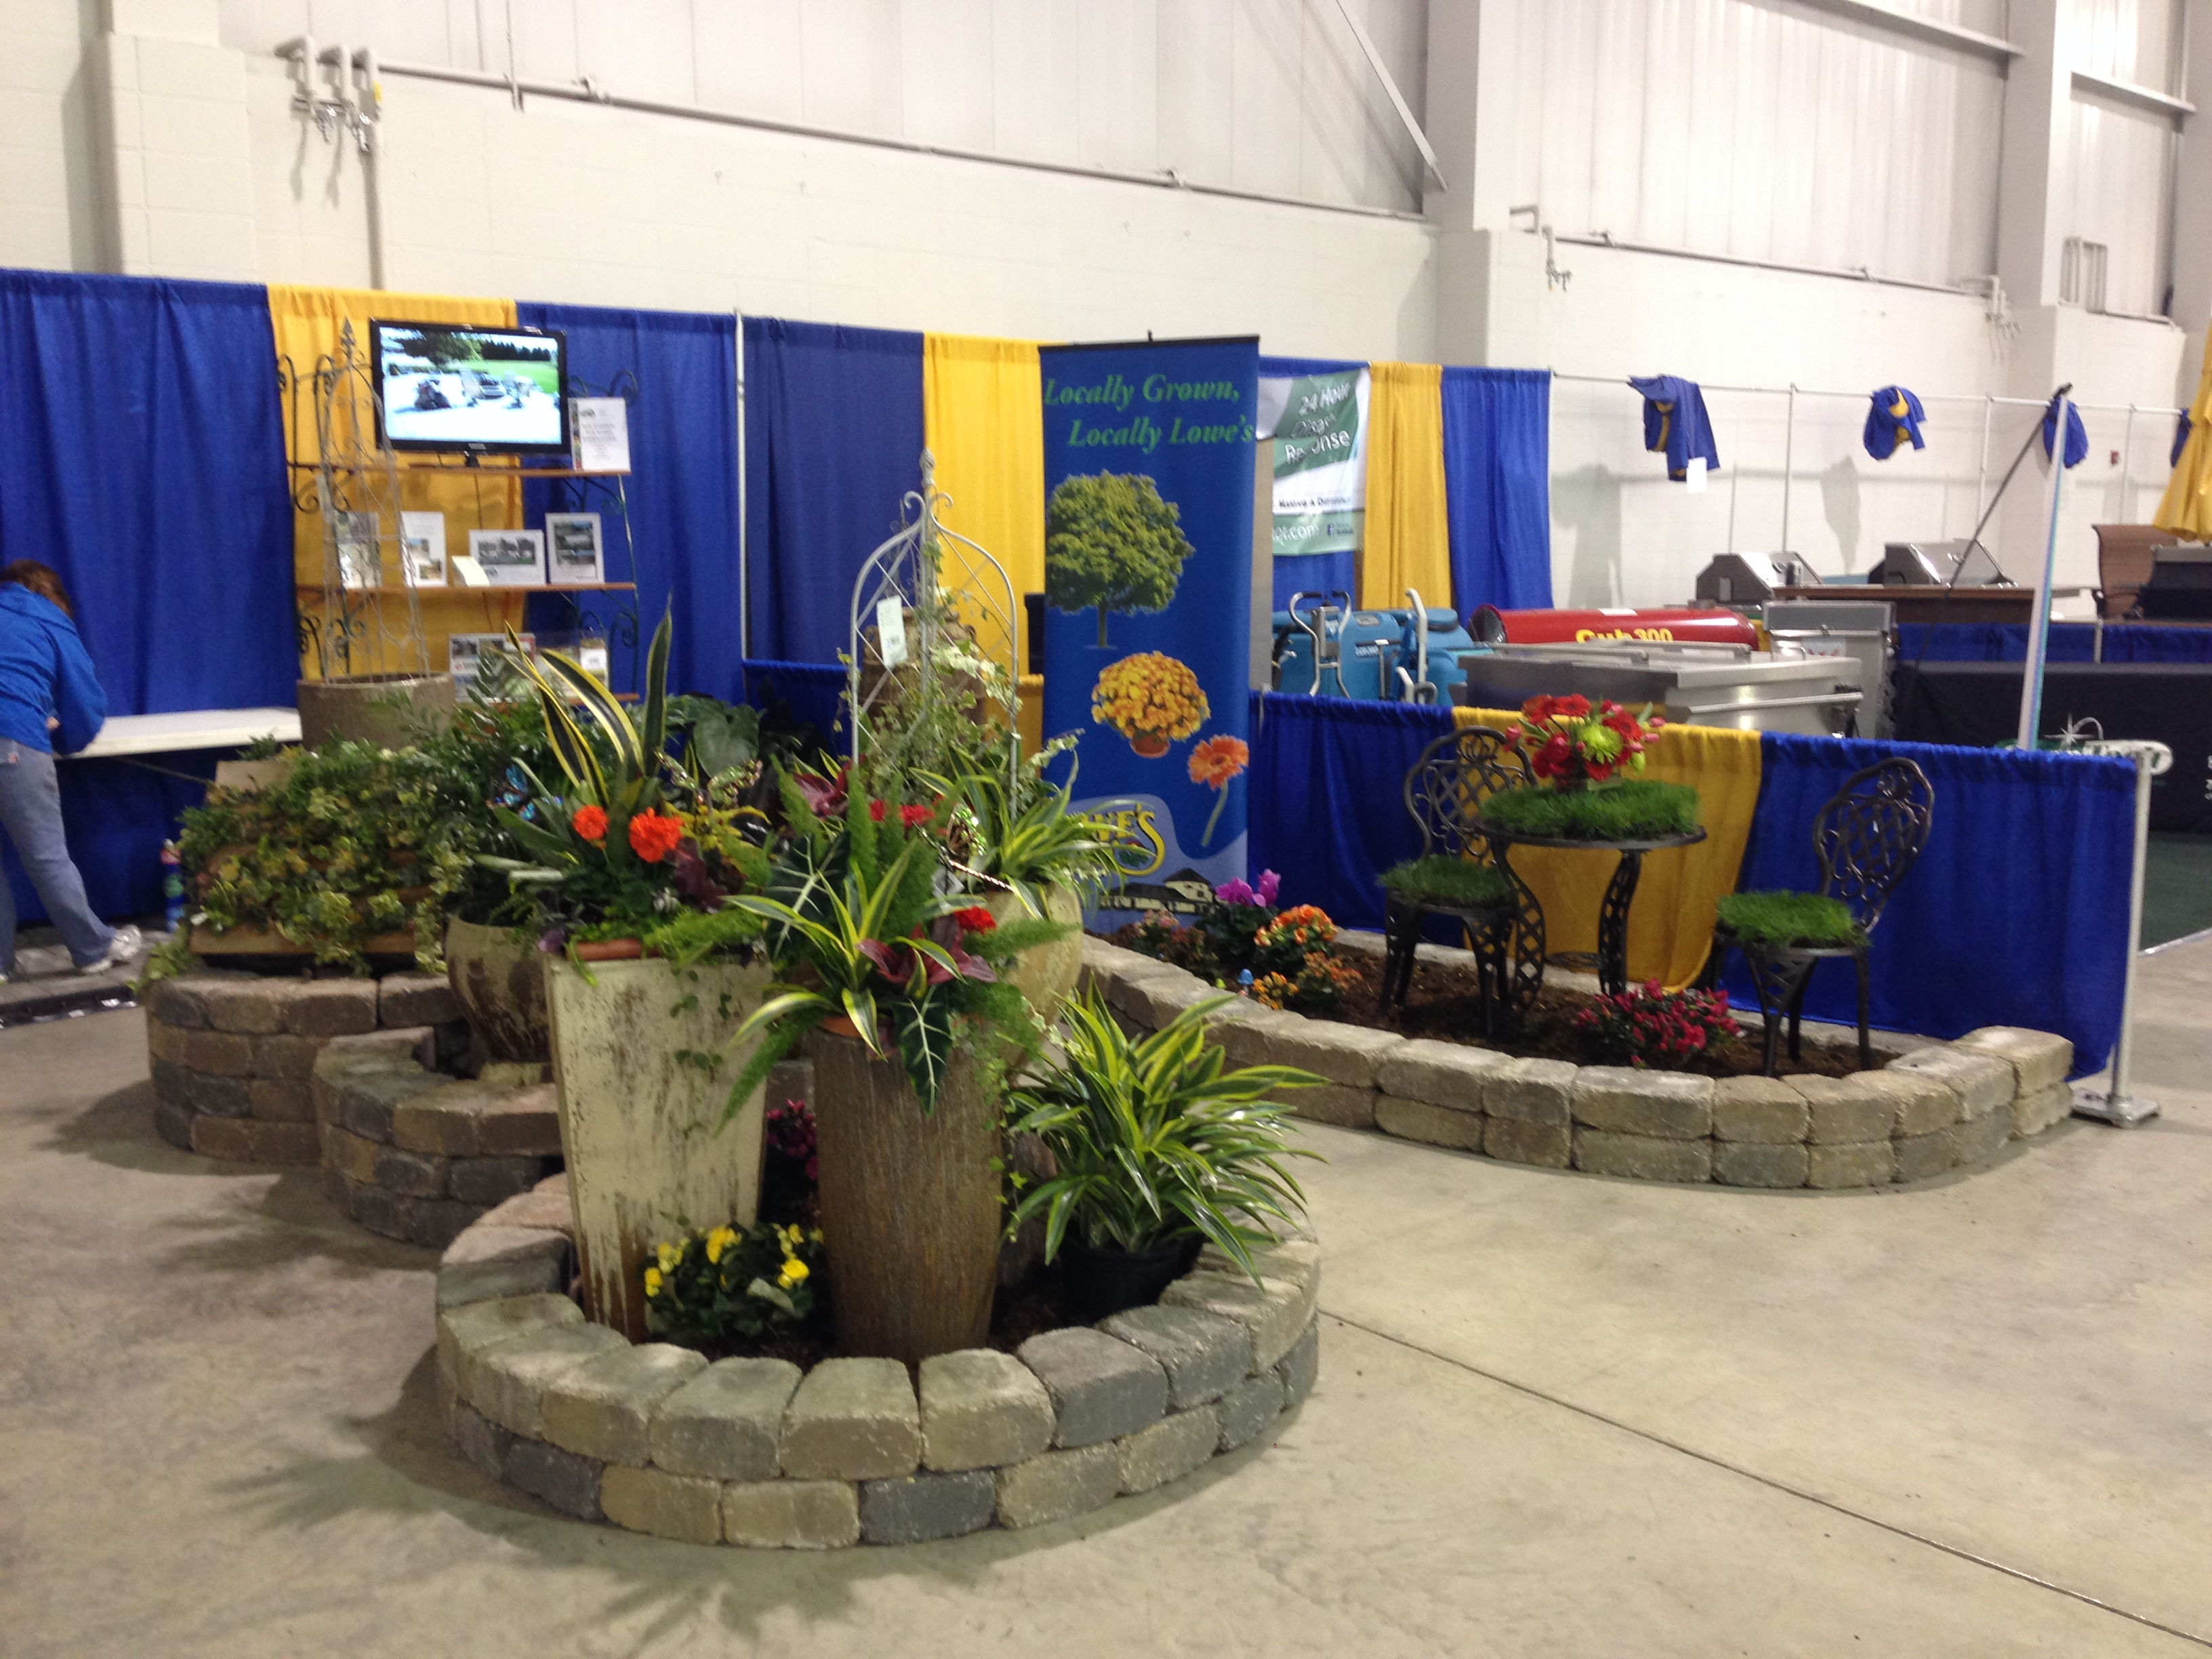 Homeshow 2014 Summer Flower Delivery Lowe 39 S Floral And Garden Center Minot Nd Send